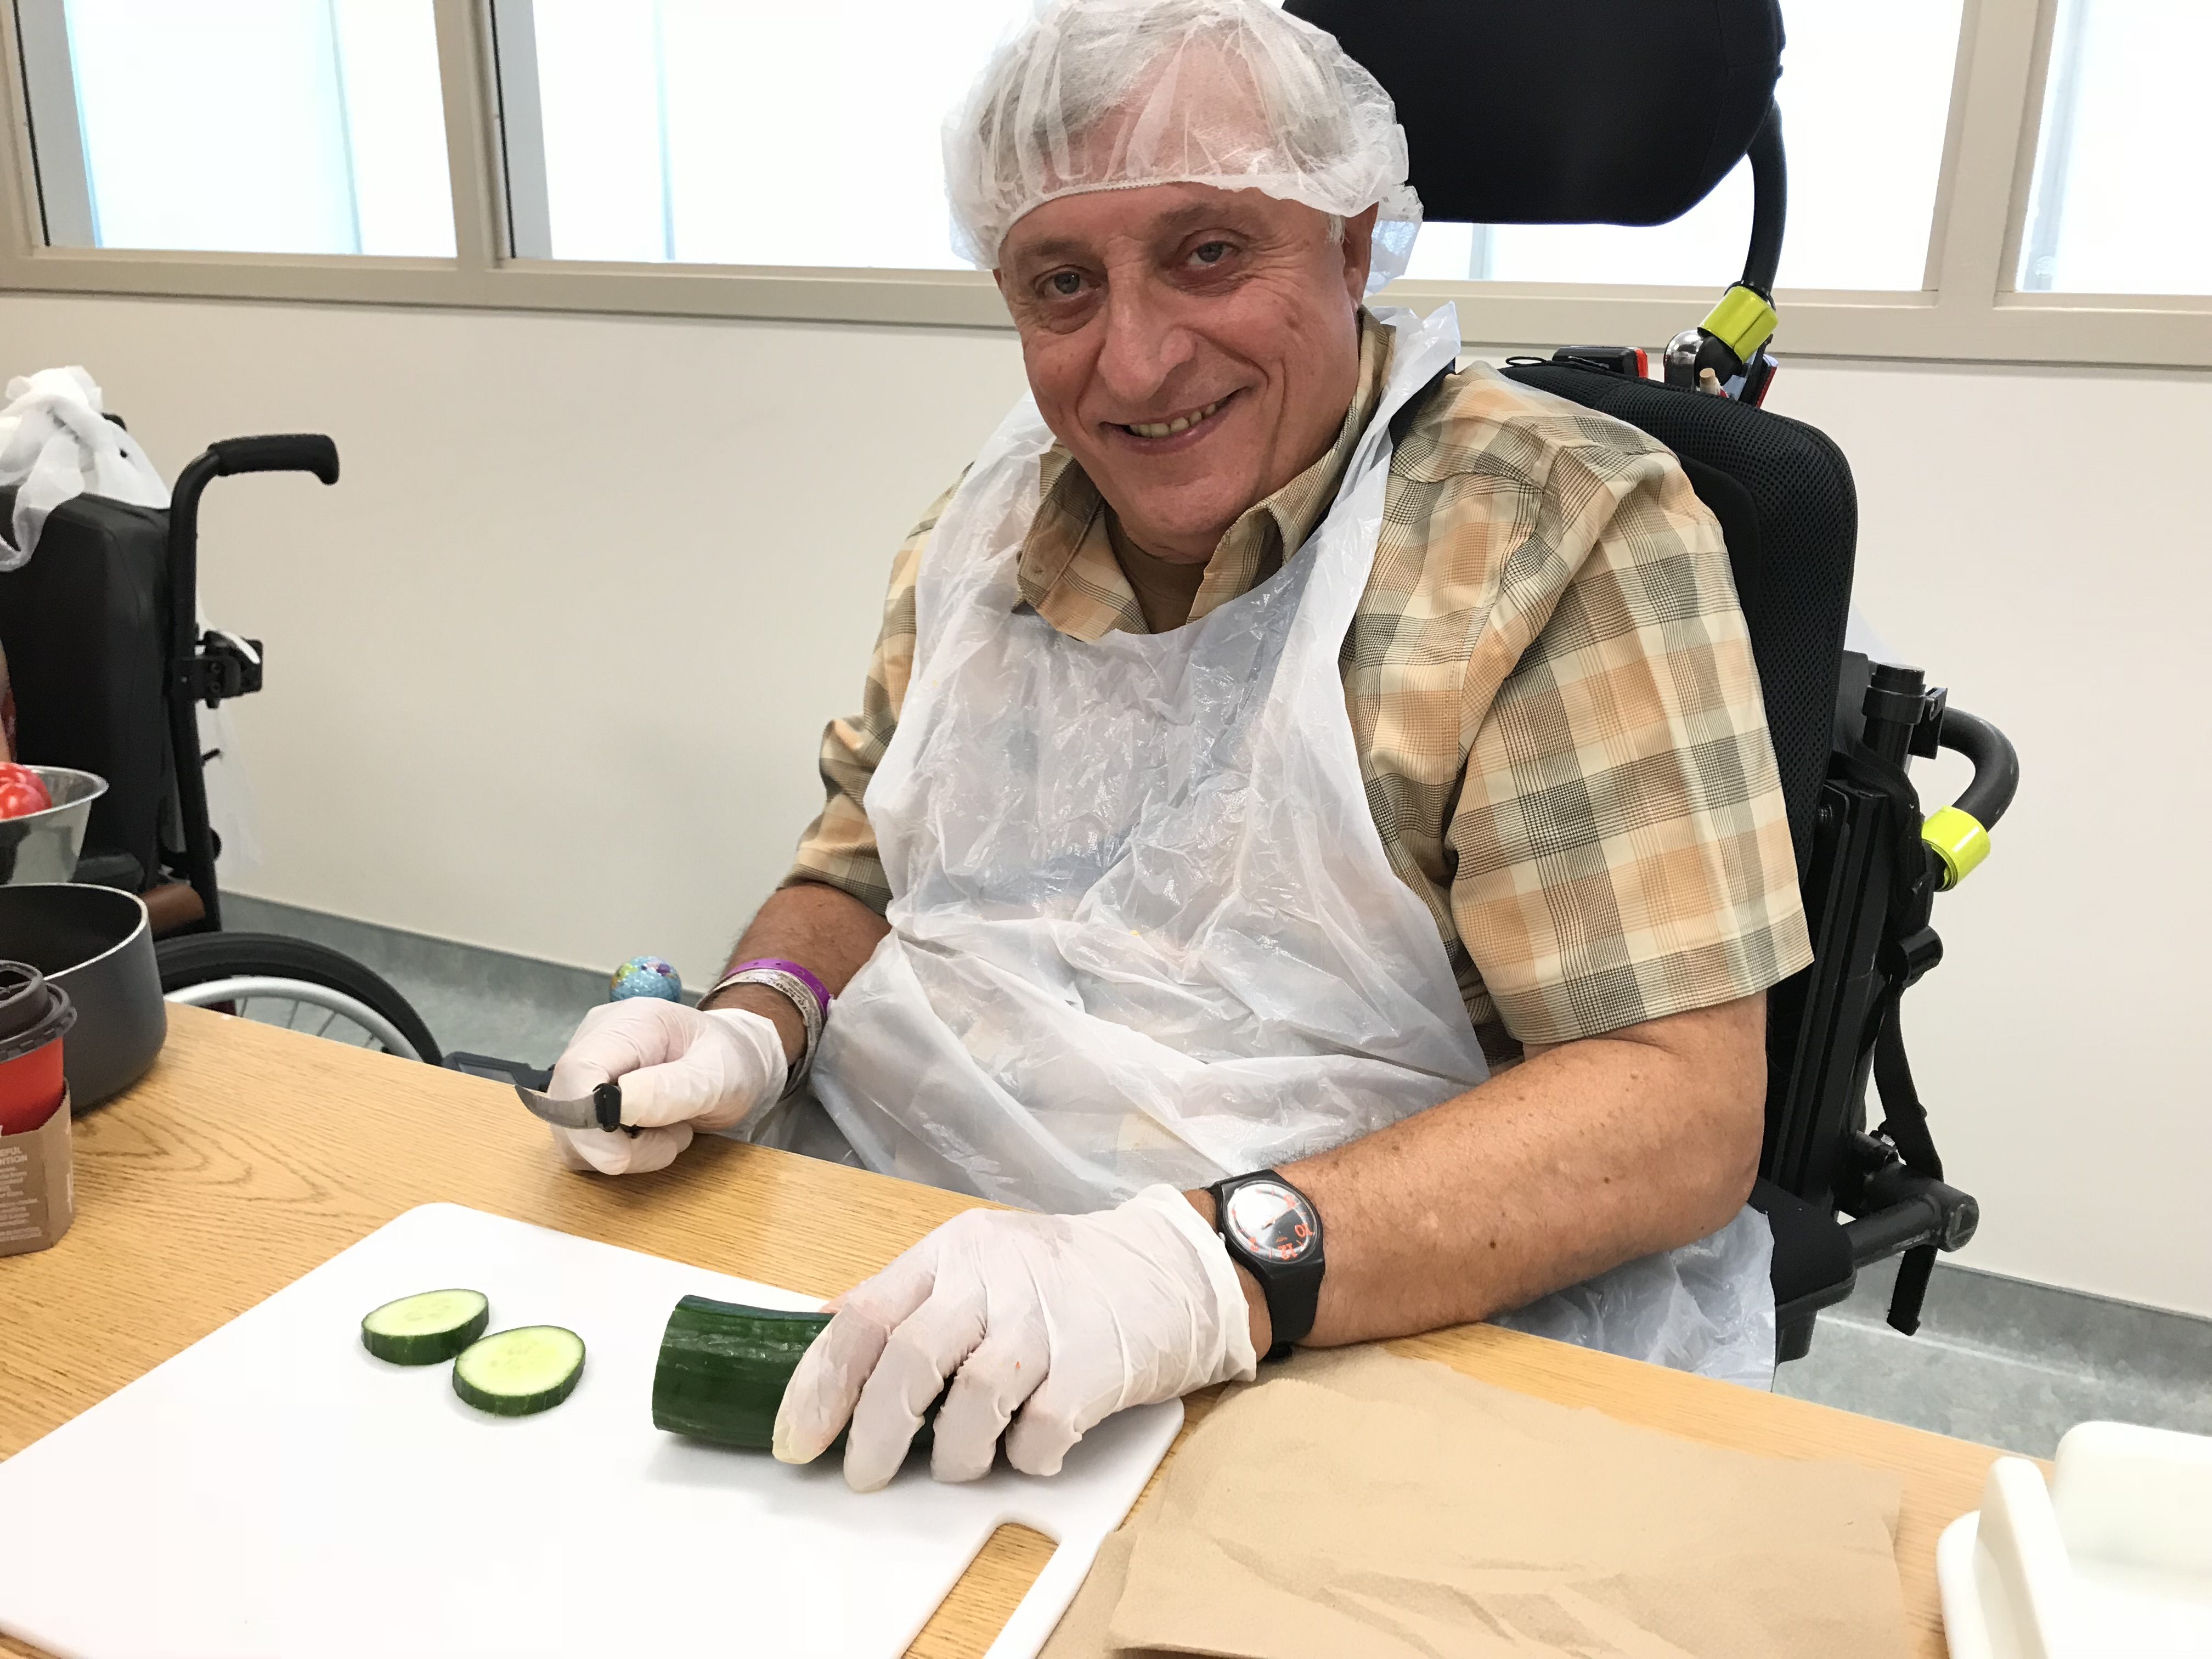 A man wearing an apron, hair net and gloves chops a cucumber at a table.